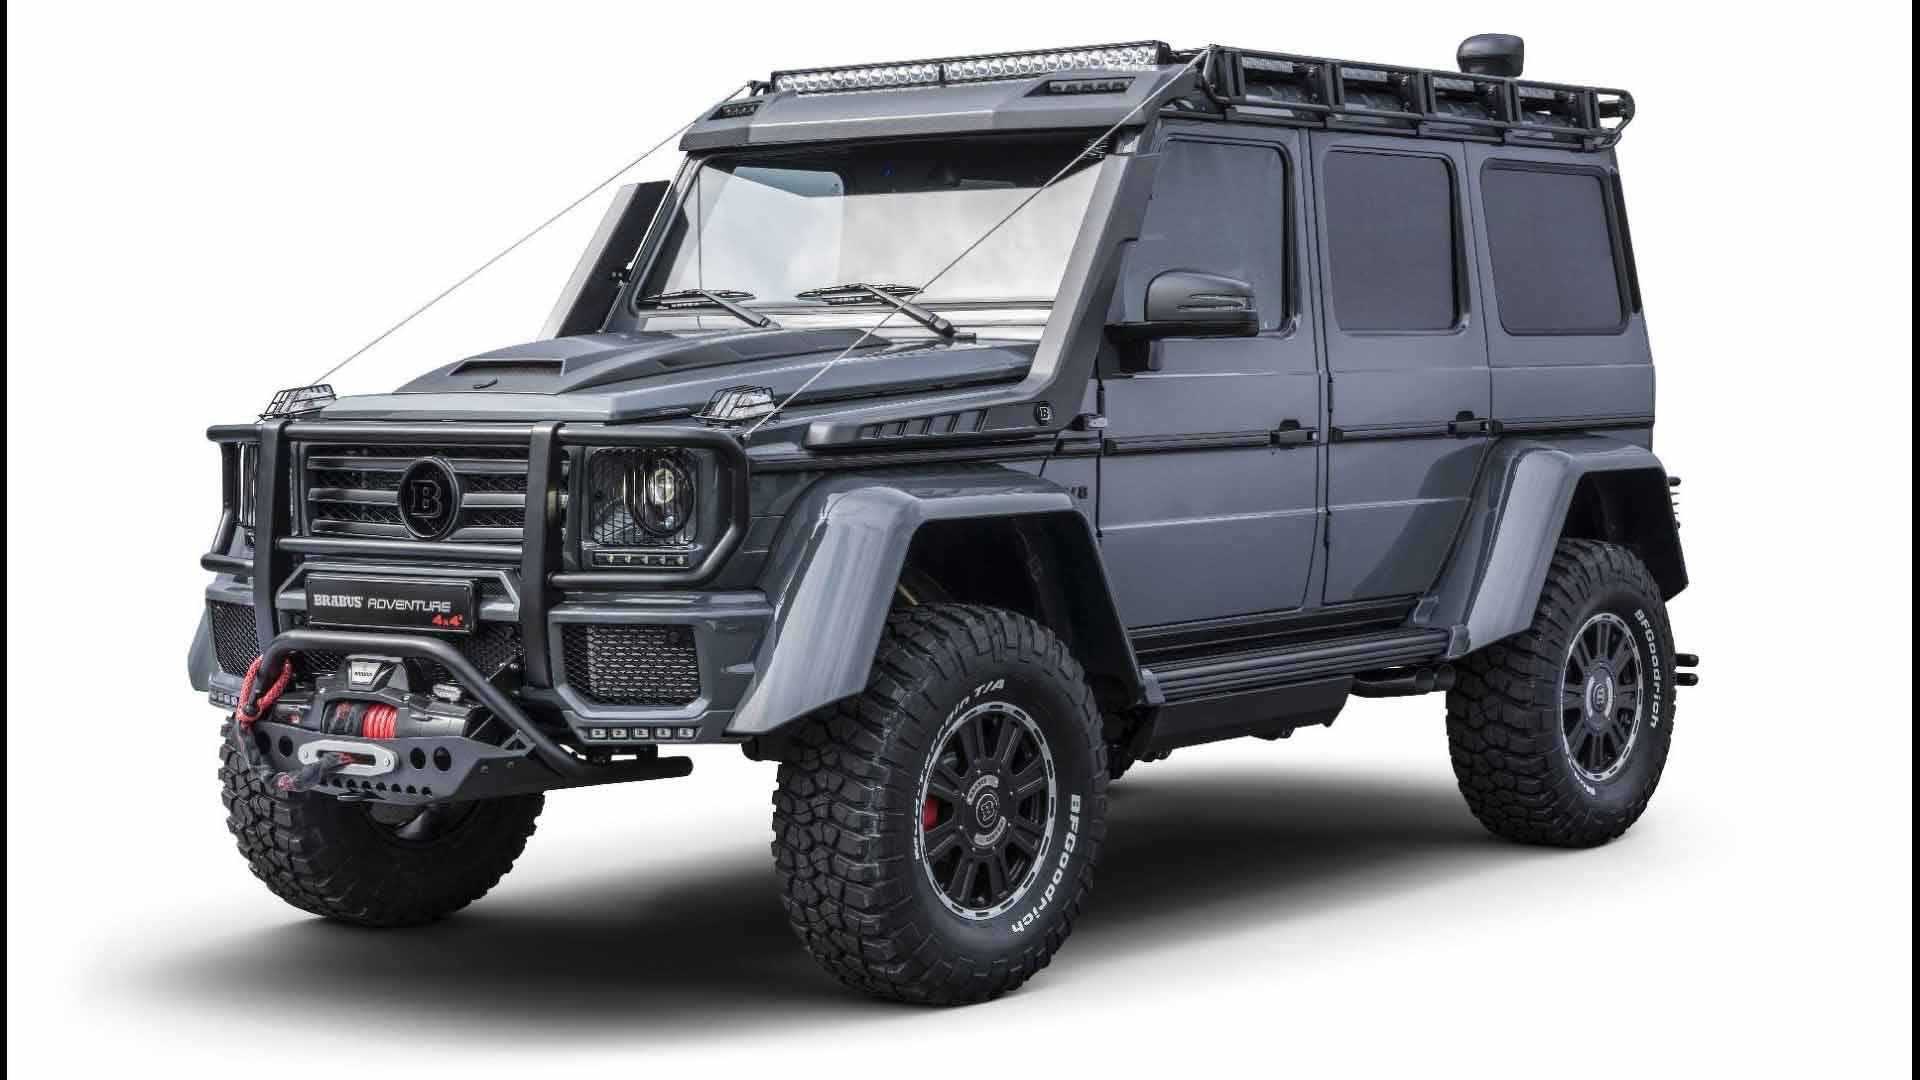 The Brabus car tuner team came forth with a video showing an extremely heavily-modded Mercedes-Benz G500 4×4² Adventure